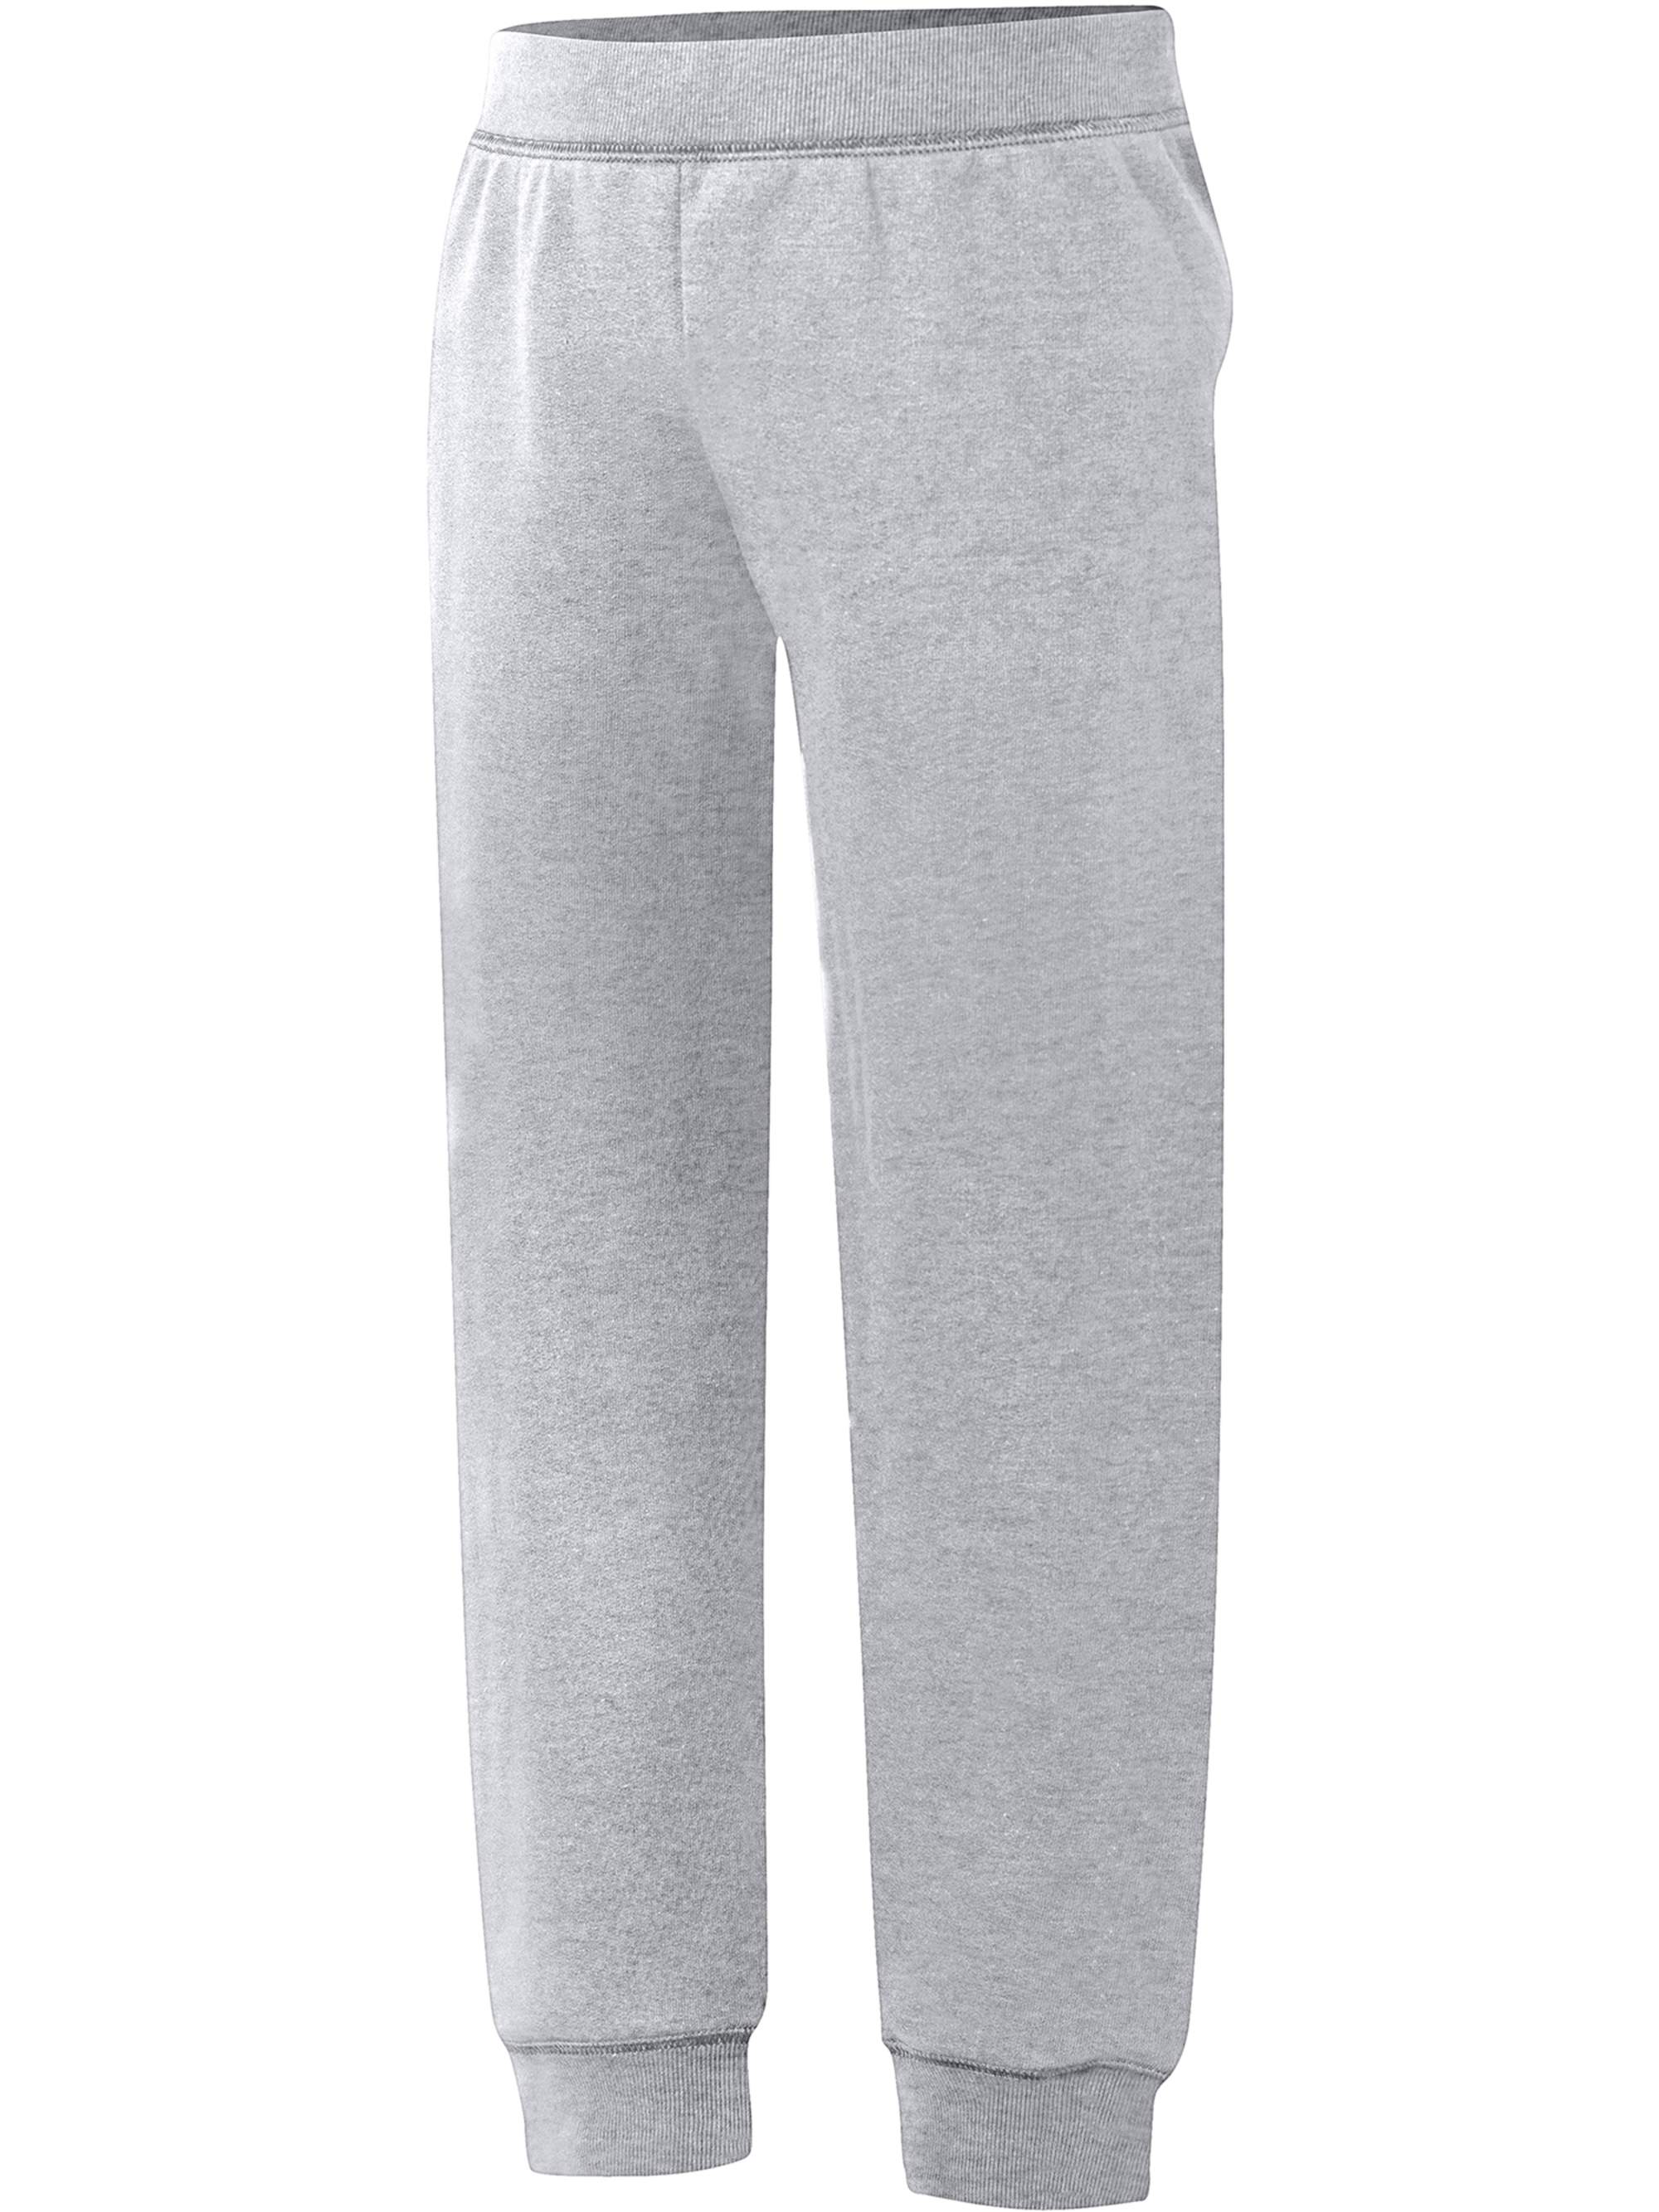 Girls' Jogger Sweatpants